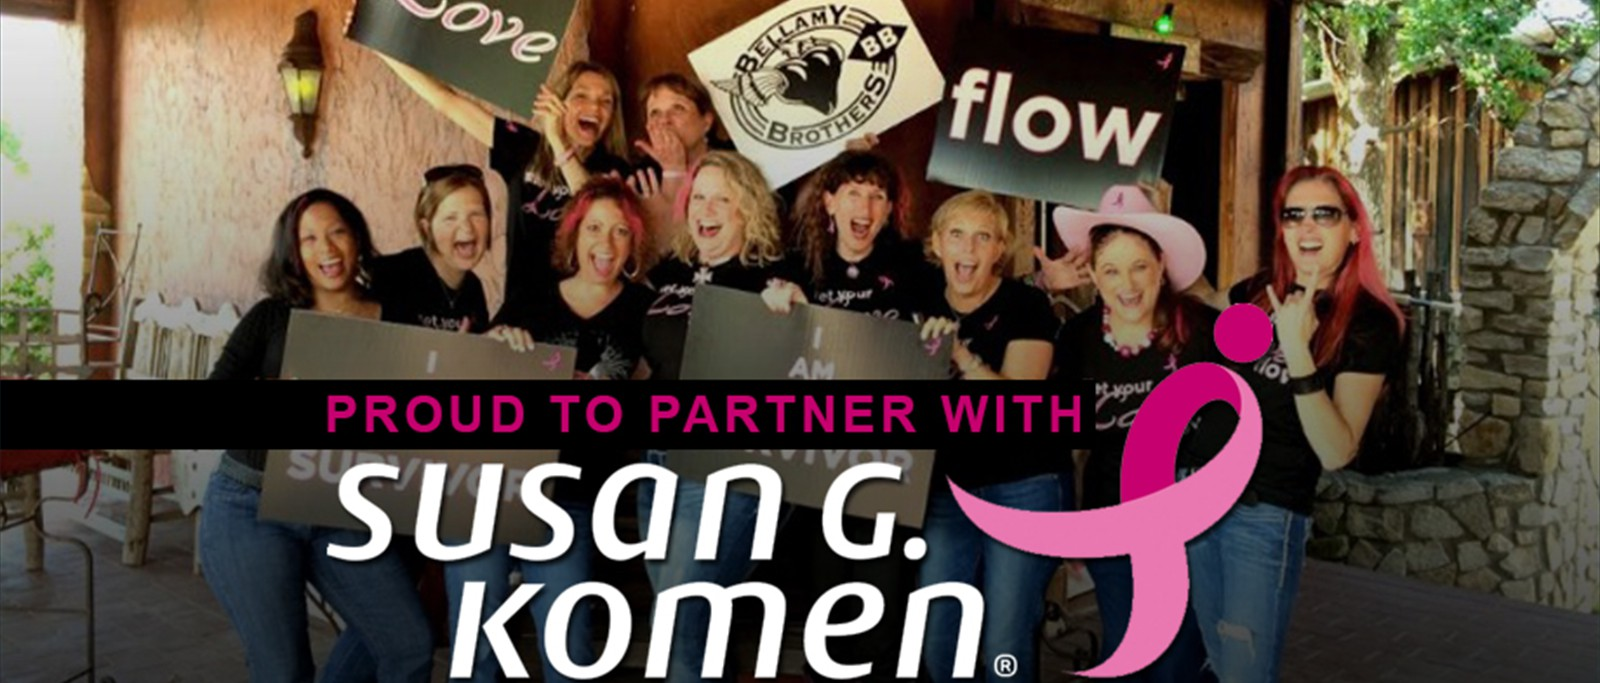 About our Partnership with Susan G. Korman